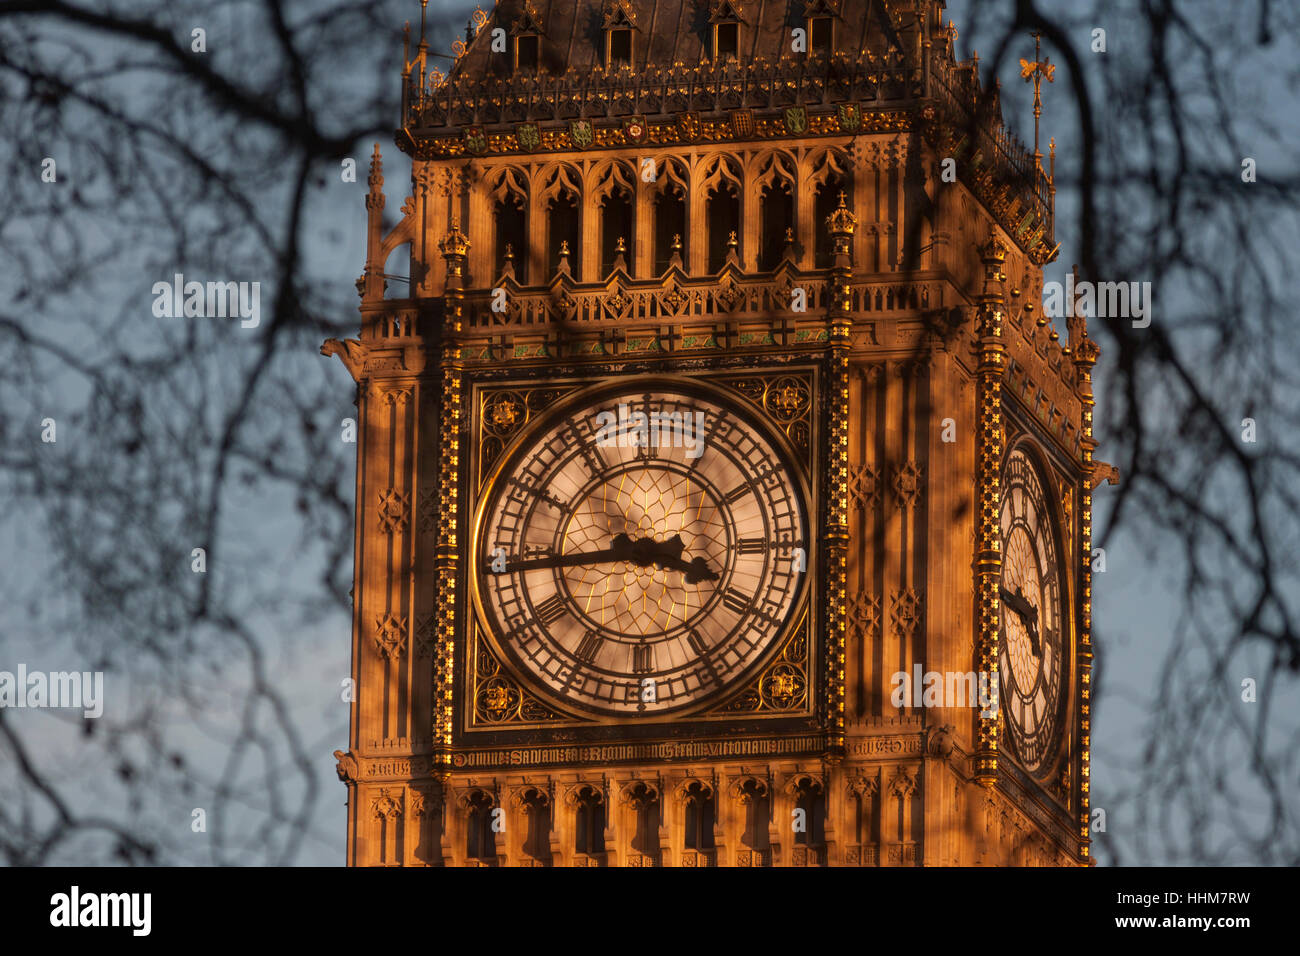 Branches of winter Plane trees in the foreground and the clockface containing the Big Ben bell in the Elizabeth - Stock Image